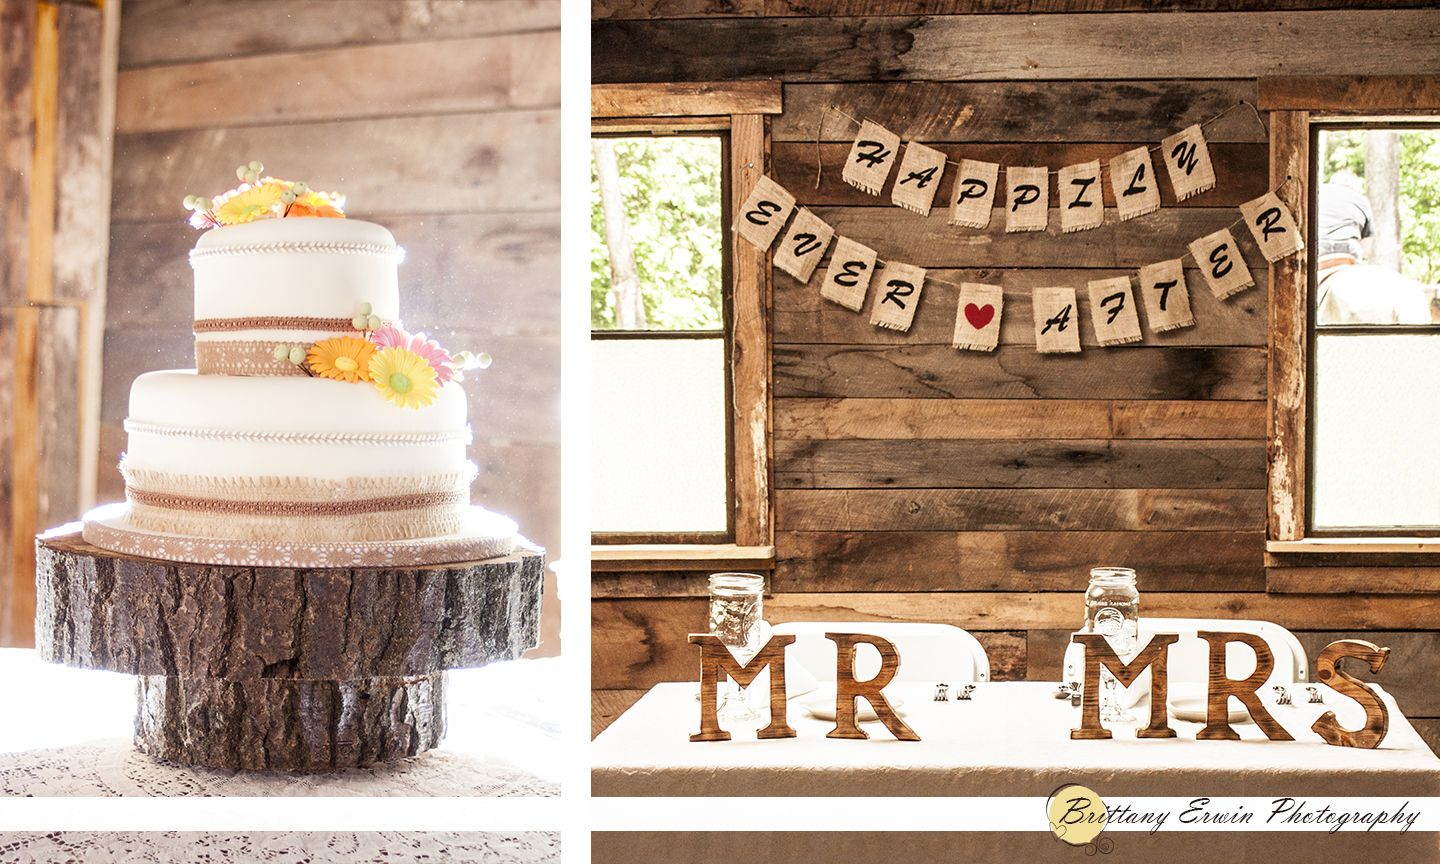 Nashville Indiana Wedding At The Story Inn Wooden Details And Burlap Banner C